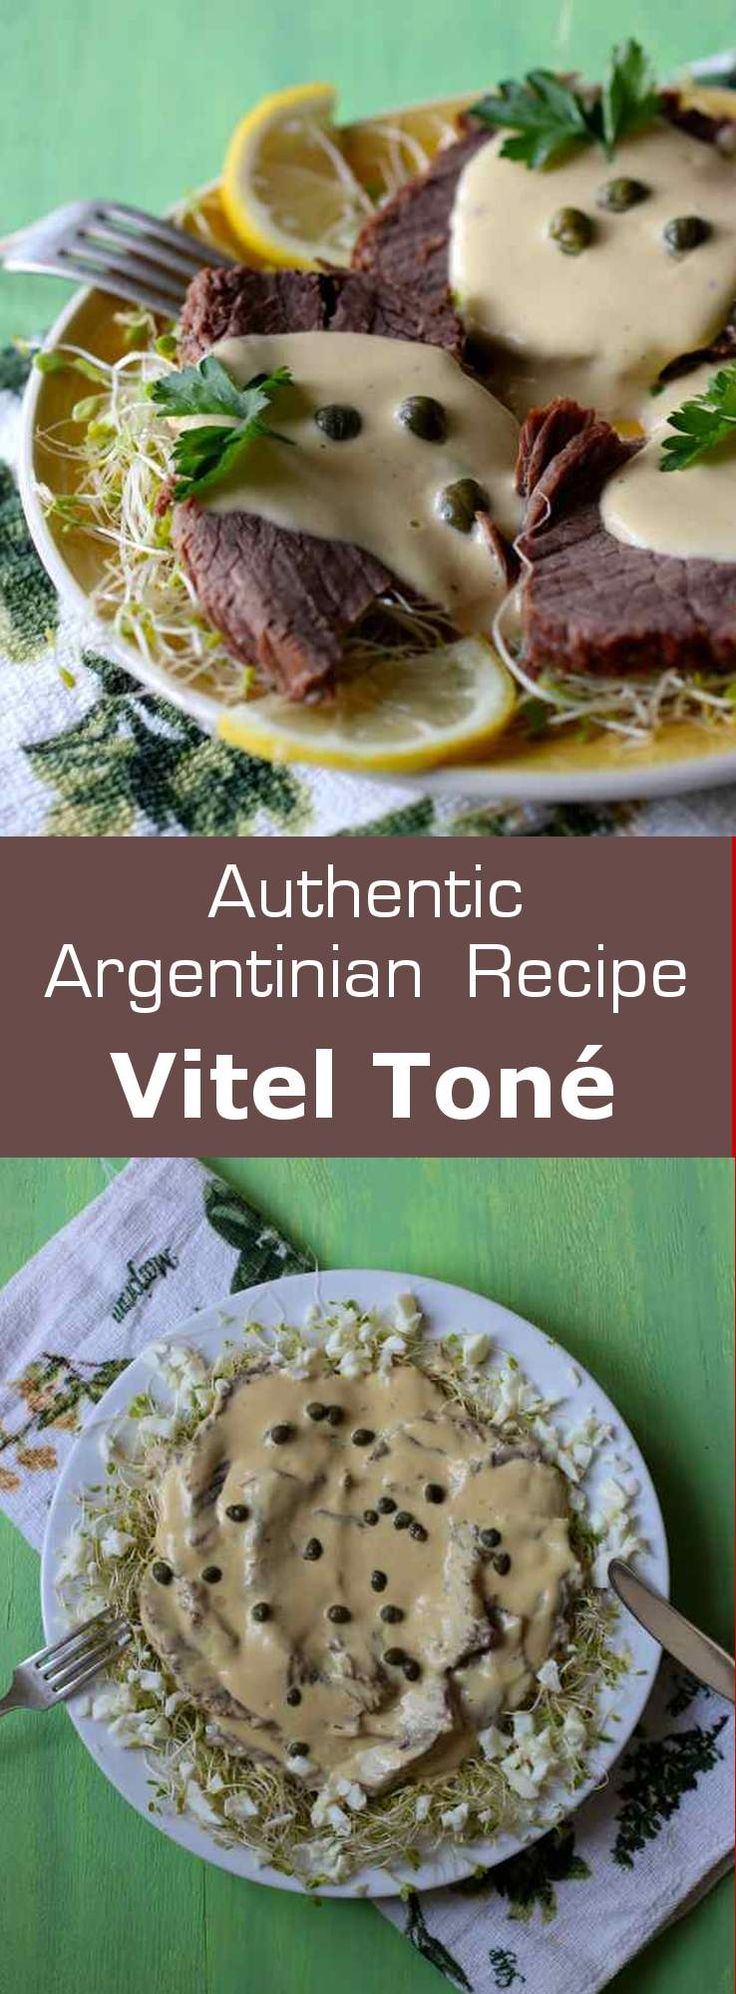 Vitel toné is a classic Christmas Argentinian dish originally from Italy, which consists of veal slathered with an anchovy and tuna-based creamy sauce. #christmas #argentina #196flavors